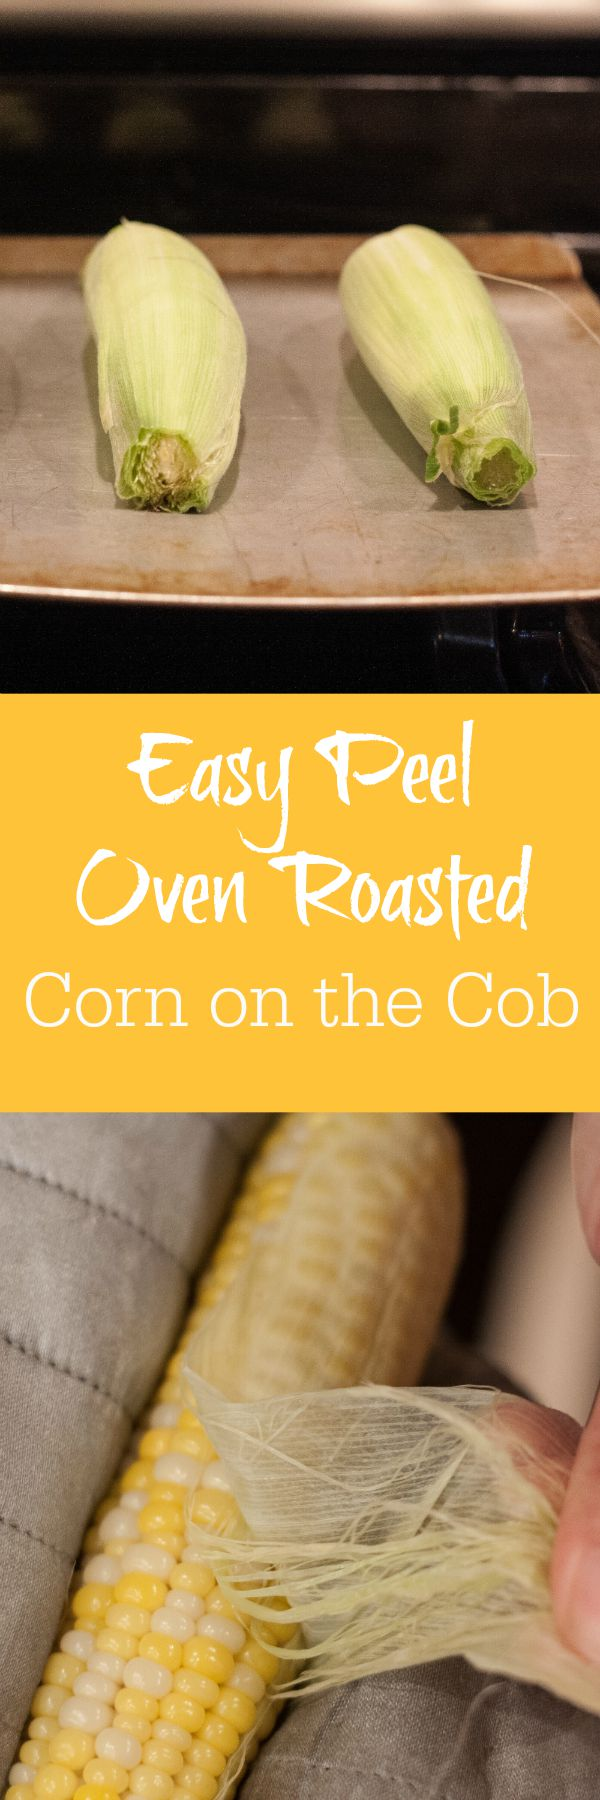 No-Mess, Crowd-Pleasing Corn on the Cob